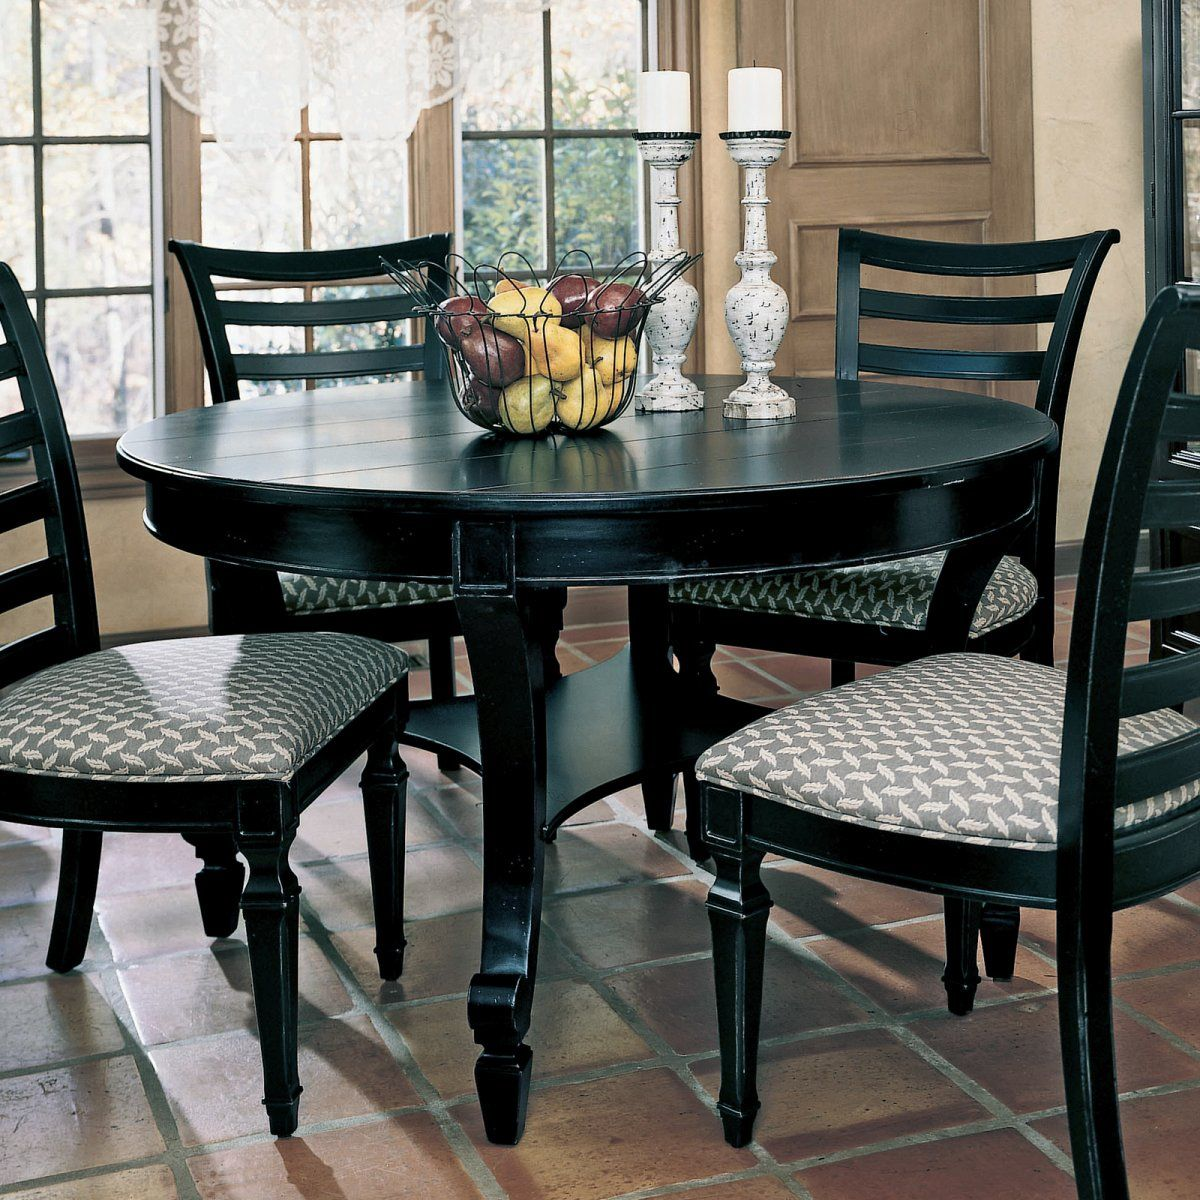 100 Black Round Kitchen Table And Chairs Small Kitchen Pantry Ideas Check More At Http Round Kitchen Table Black Round Dining Table Round Dining Table Sets